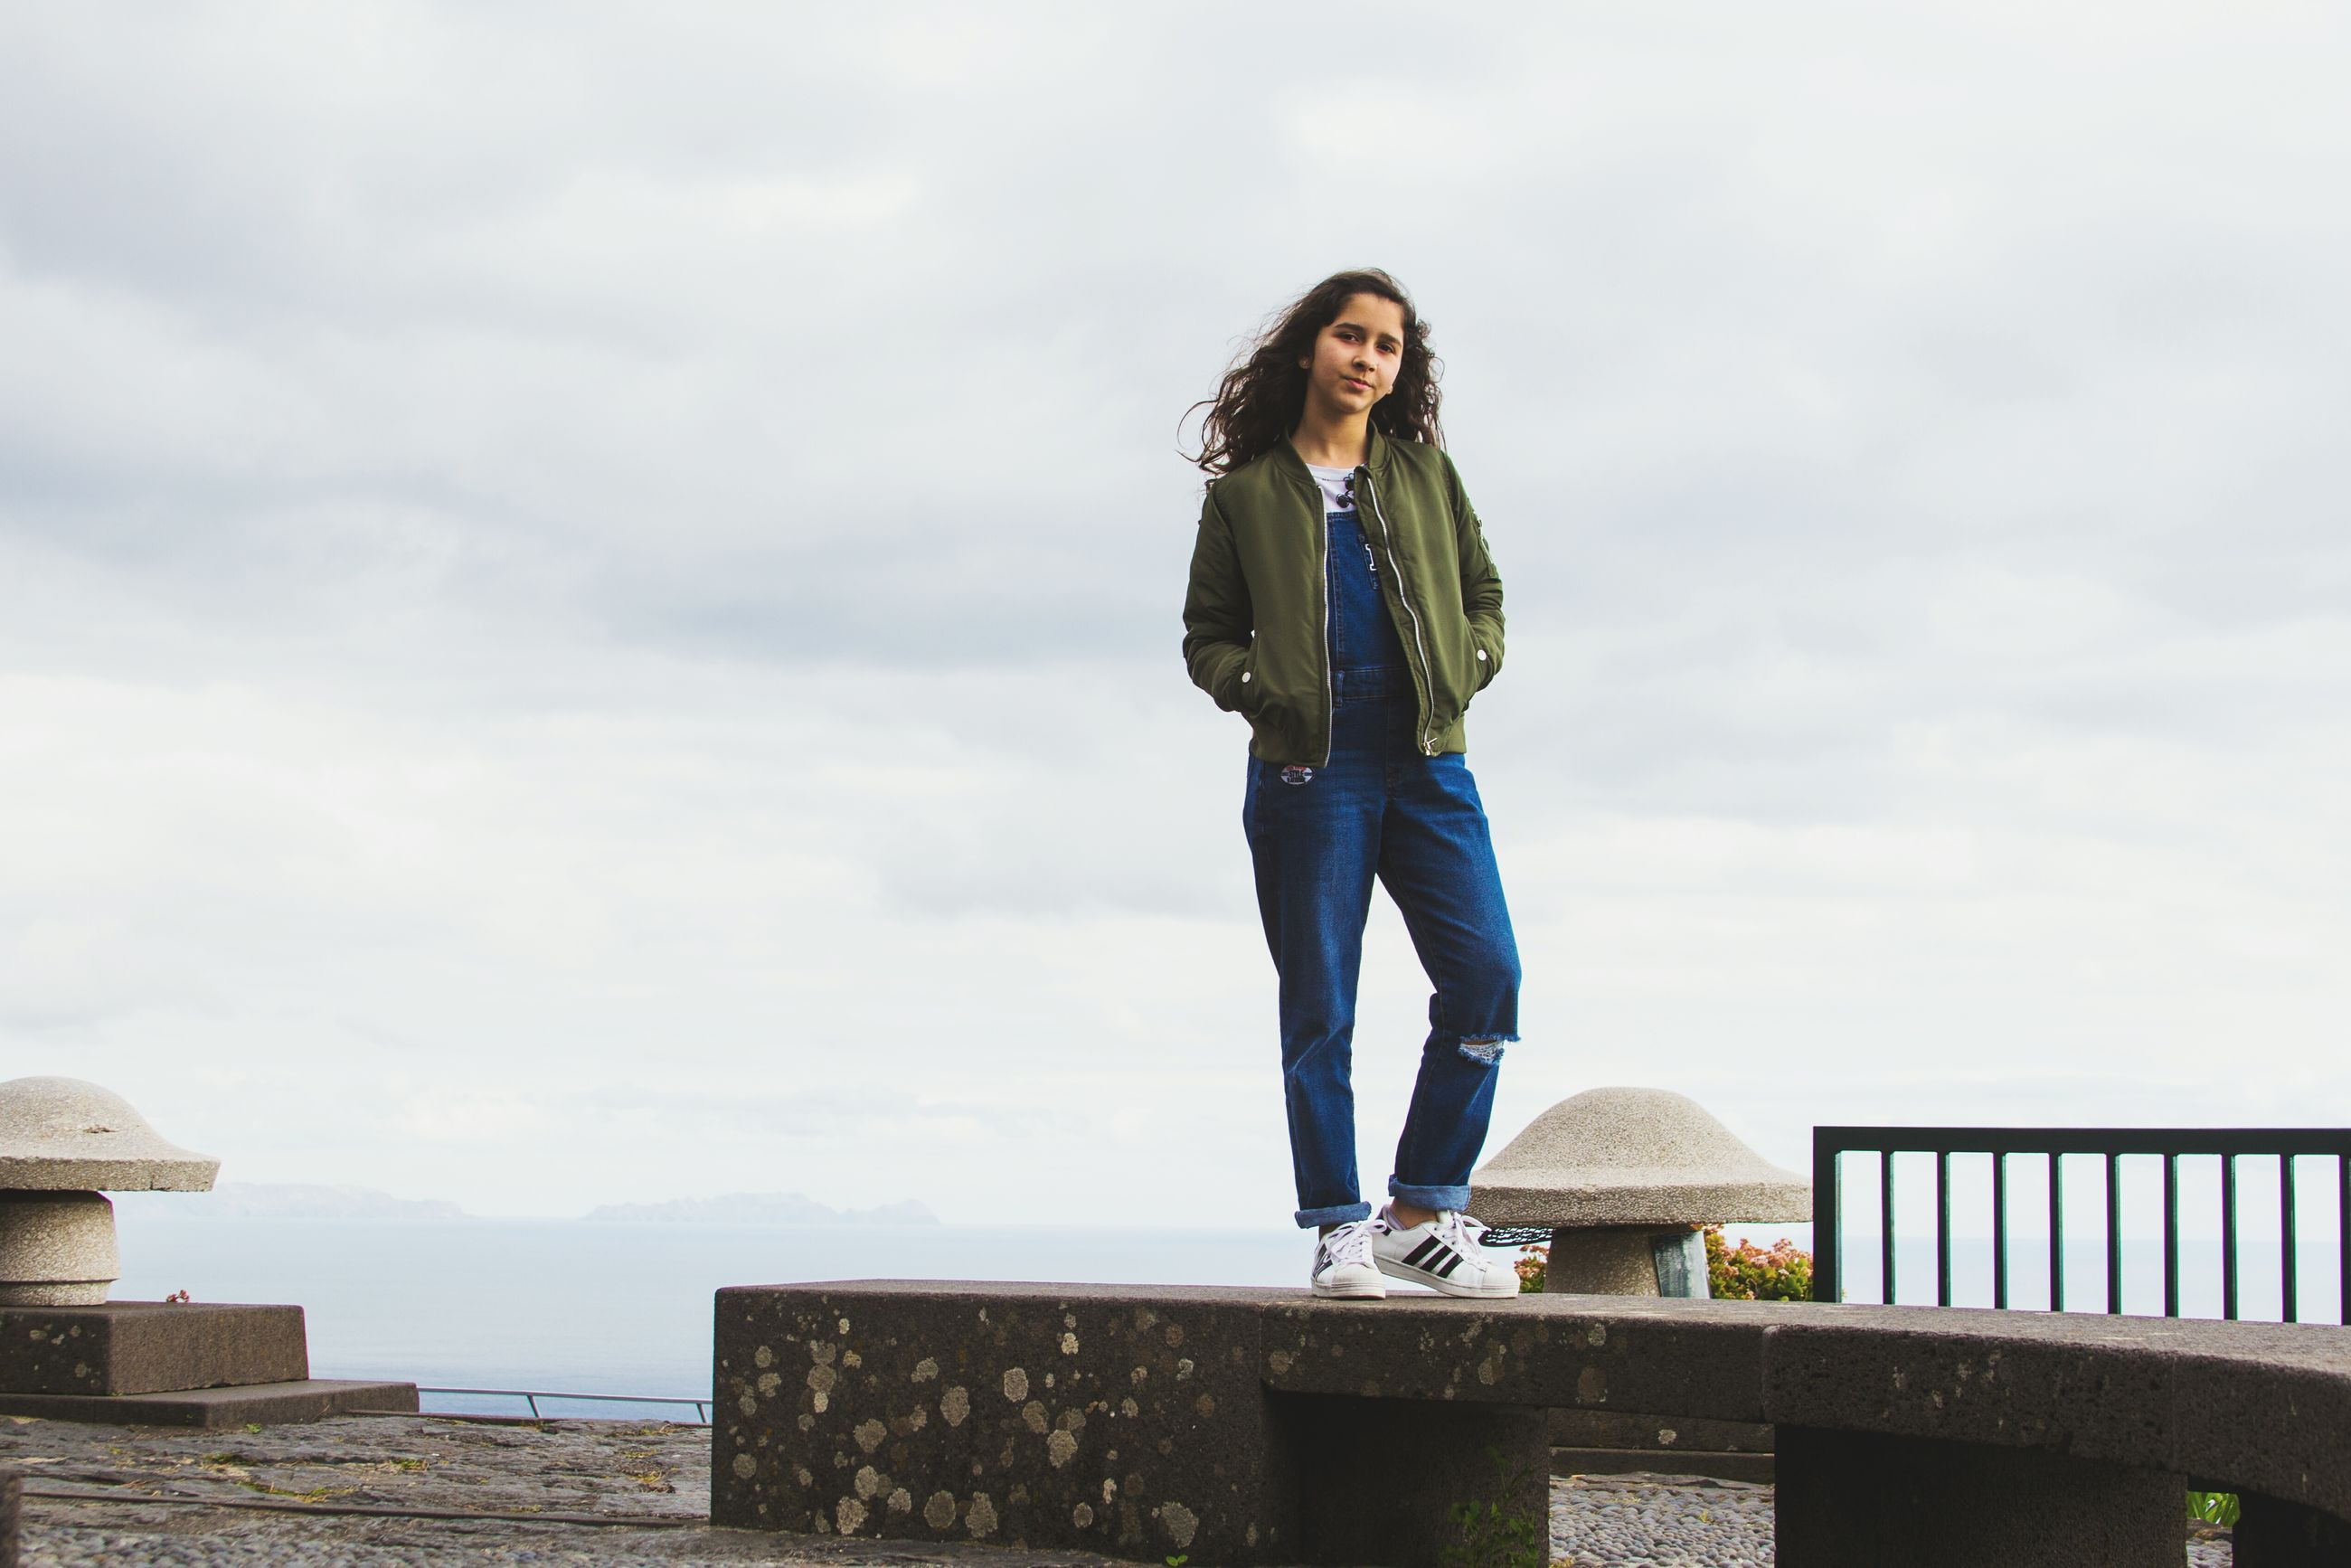 full length, low angle view, sky, one person, cloud - sky, leisure activity, casual clothing, front view, day, one woman only, young women, real people, young adult, looking down, outdoors, only women, one young woman only, beautiful woman, people, adult, adults only